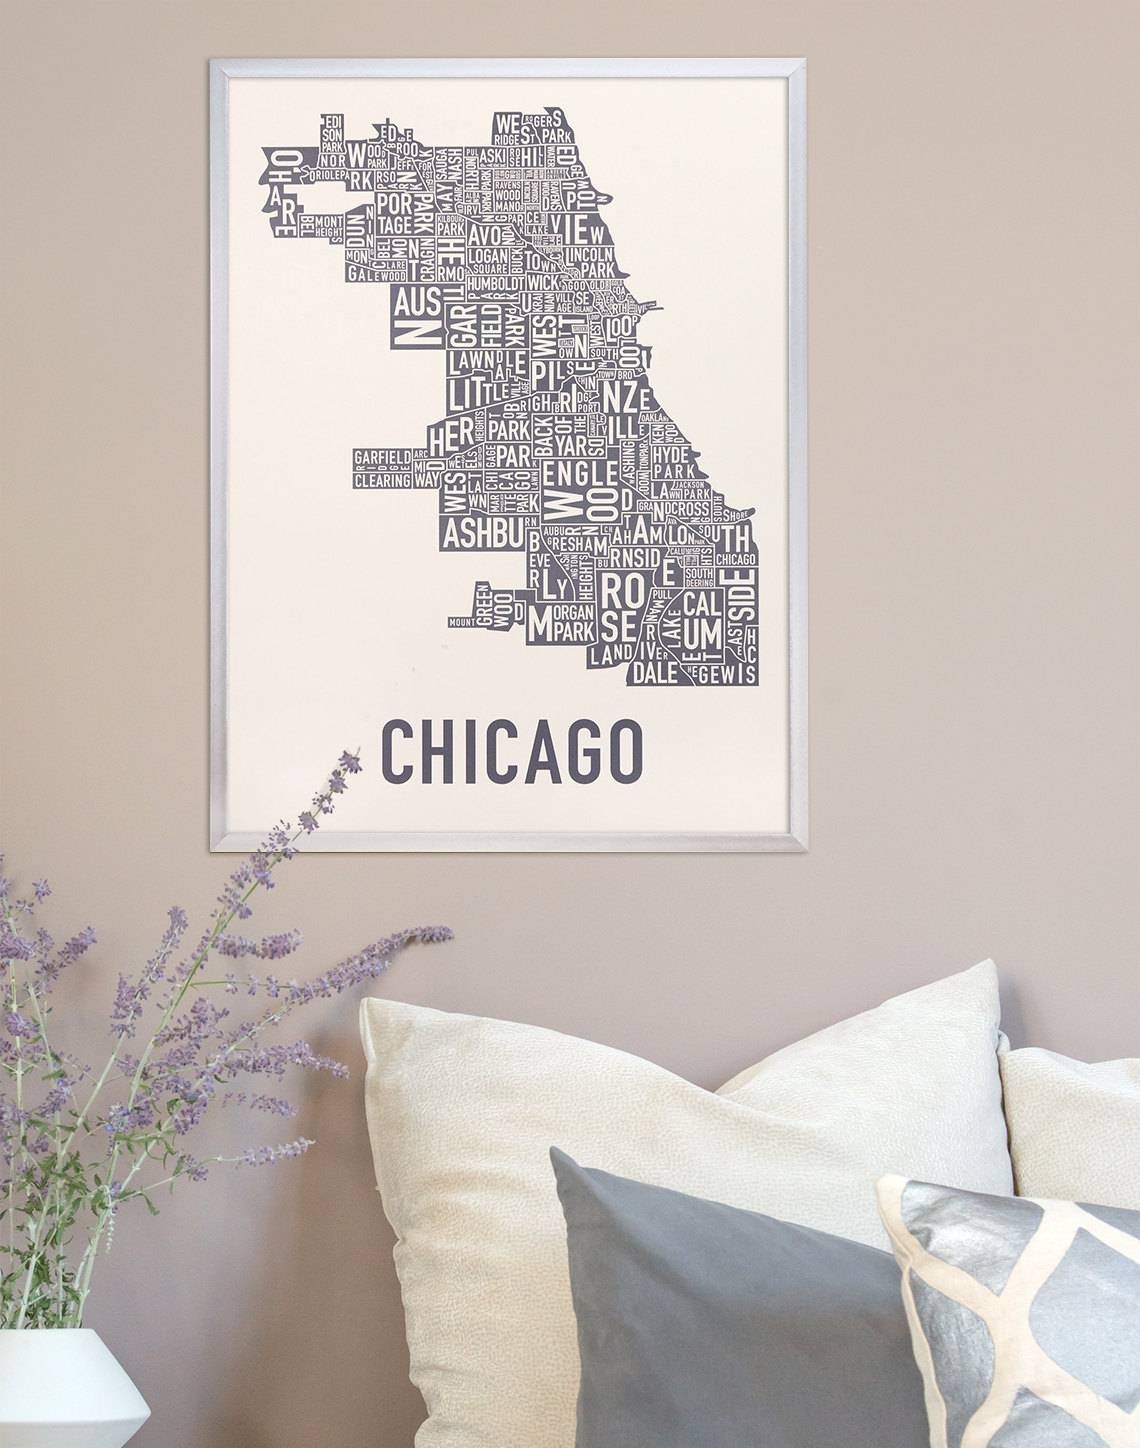 Chicago Neighborhood Map Poster The Original Chicago Intended For Most Popular Chicago Neighborhood Map Wall Art (View 8 of 20)